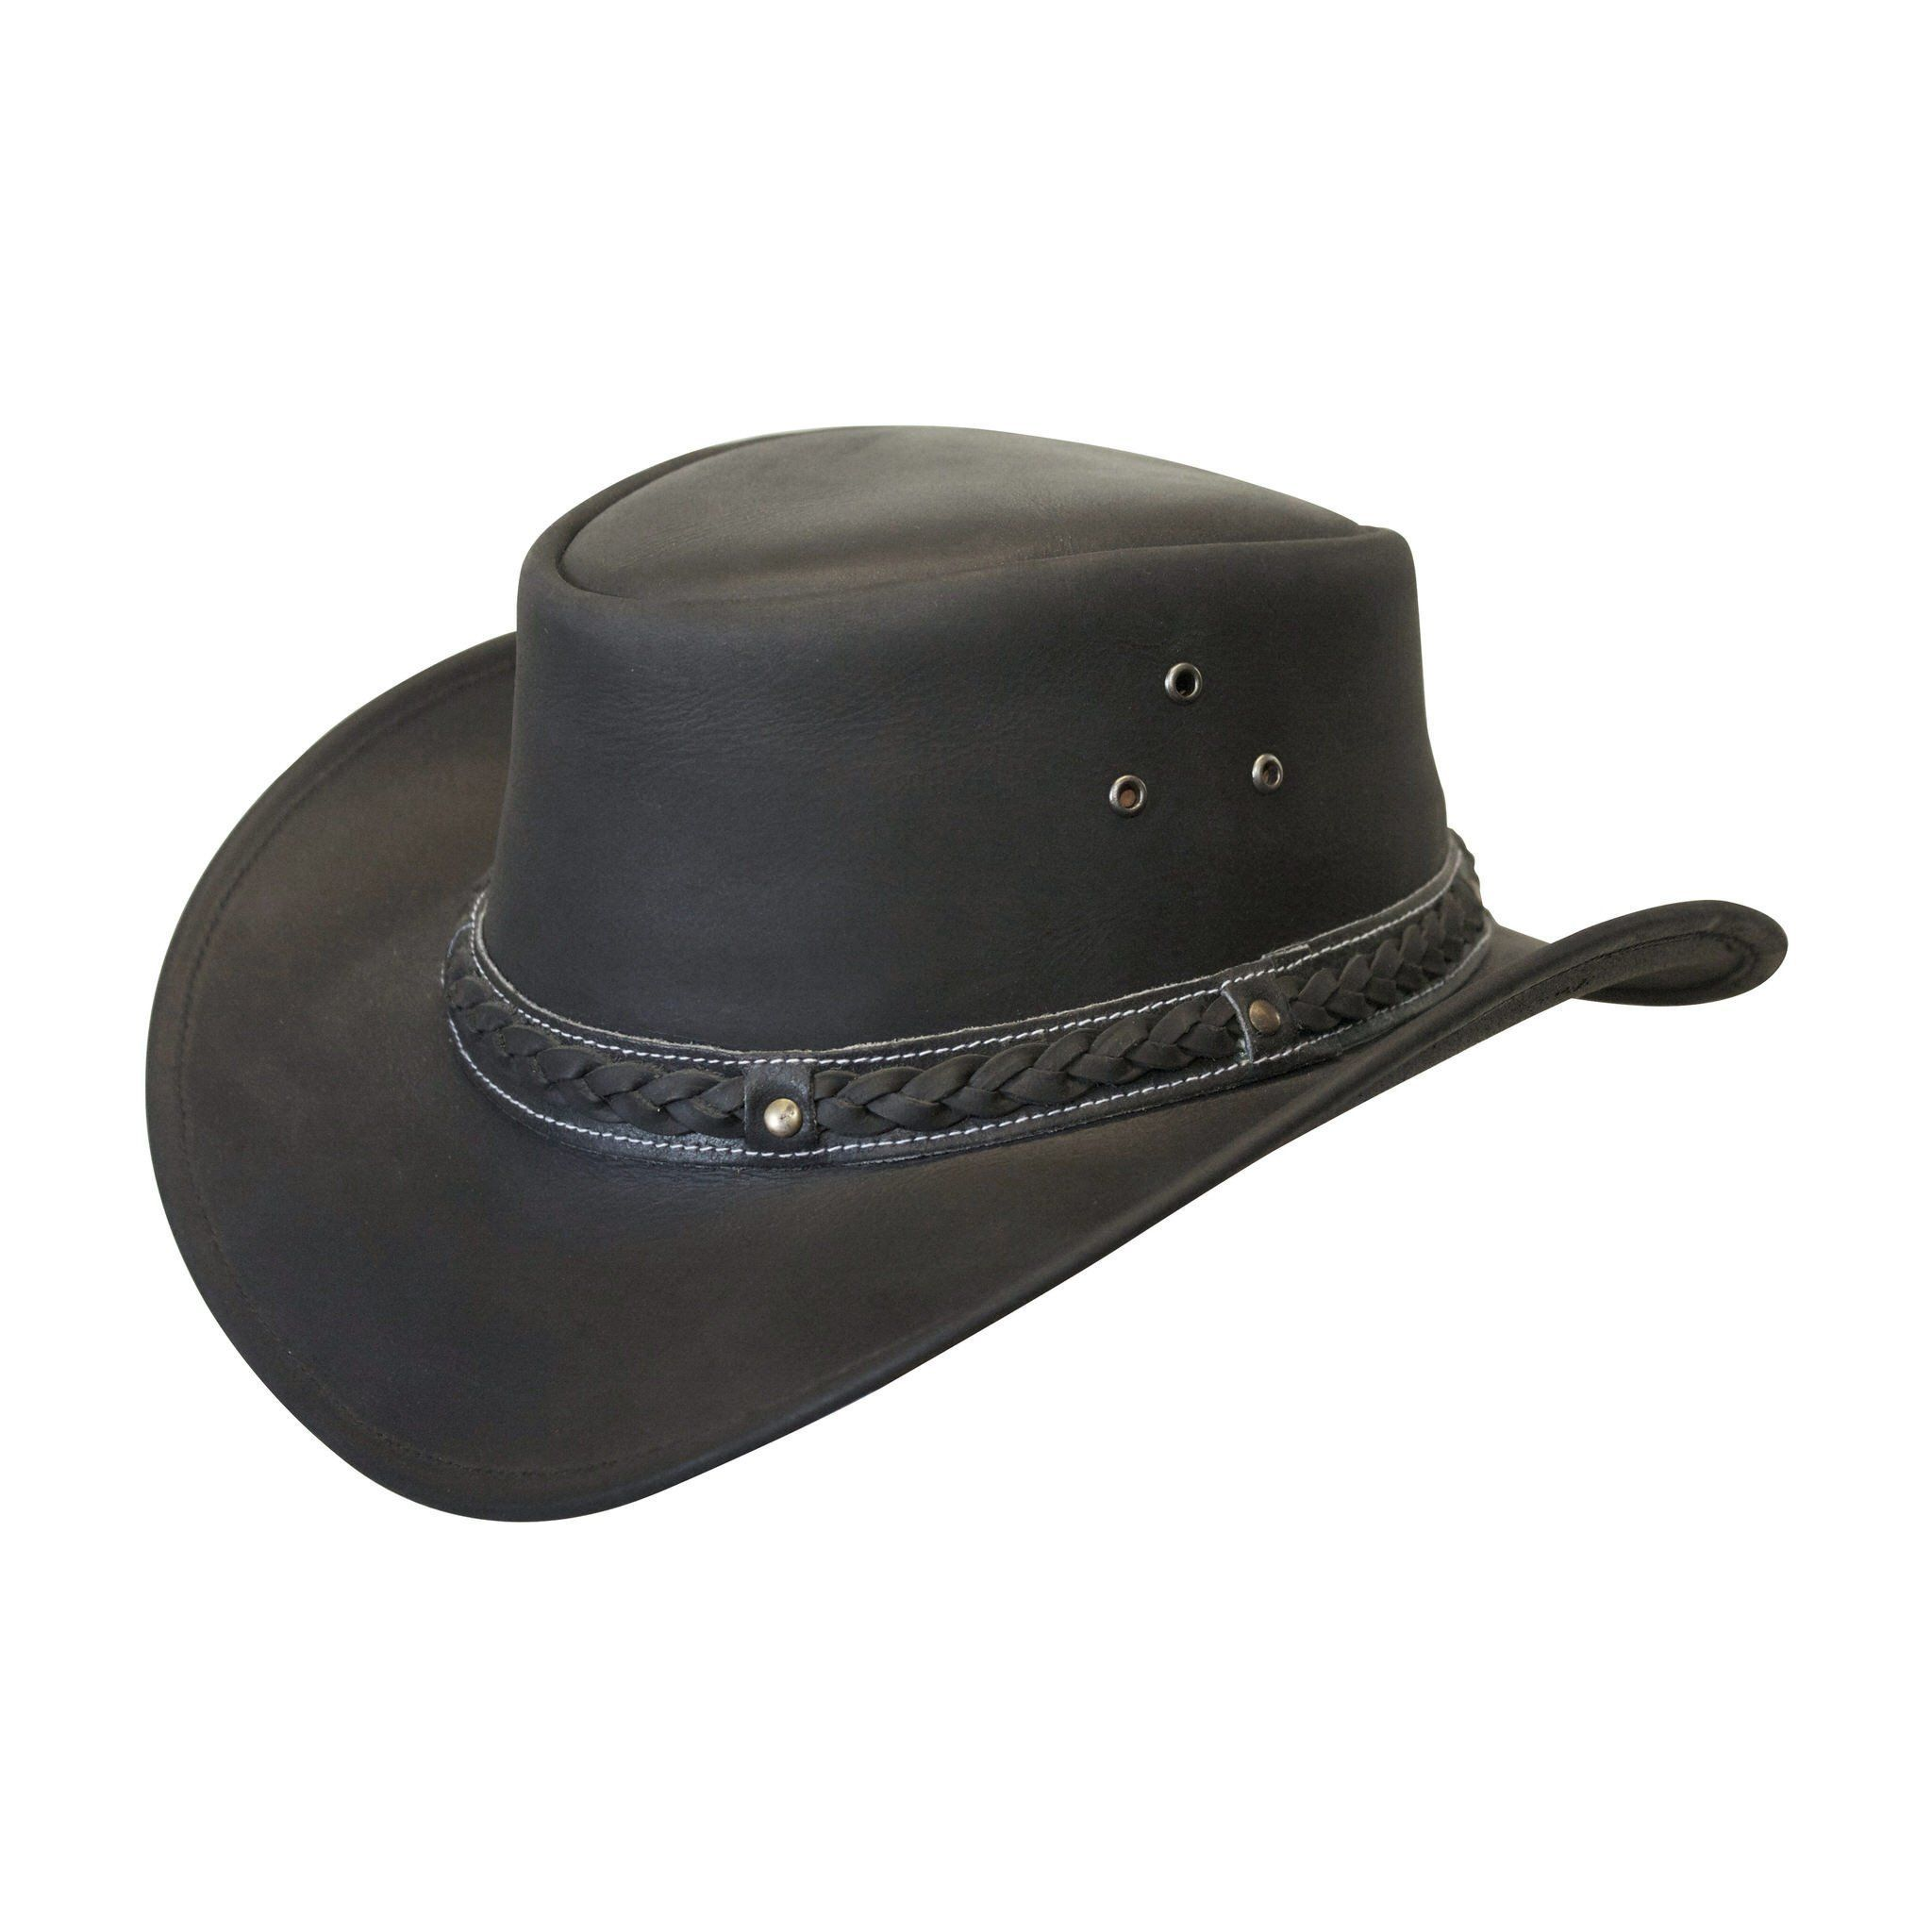 88c3ded9c25 Down Under Leather Hat  traveldestinationsaustralia